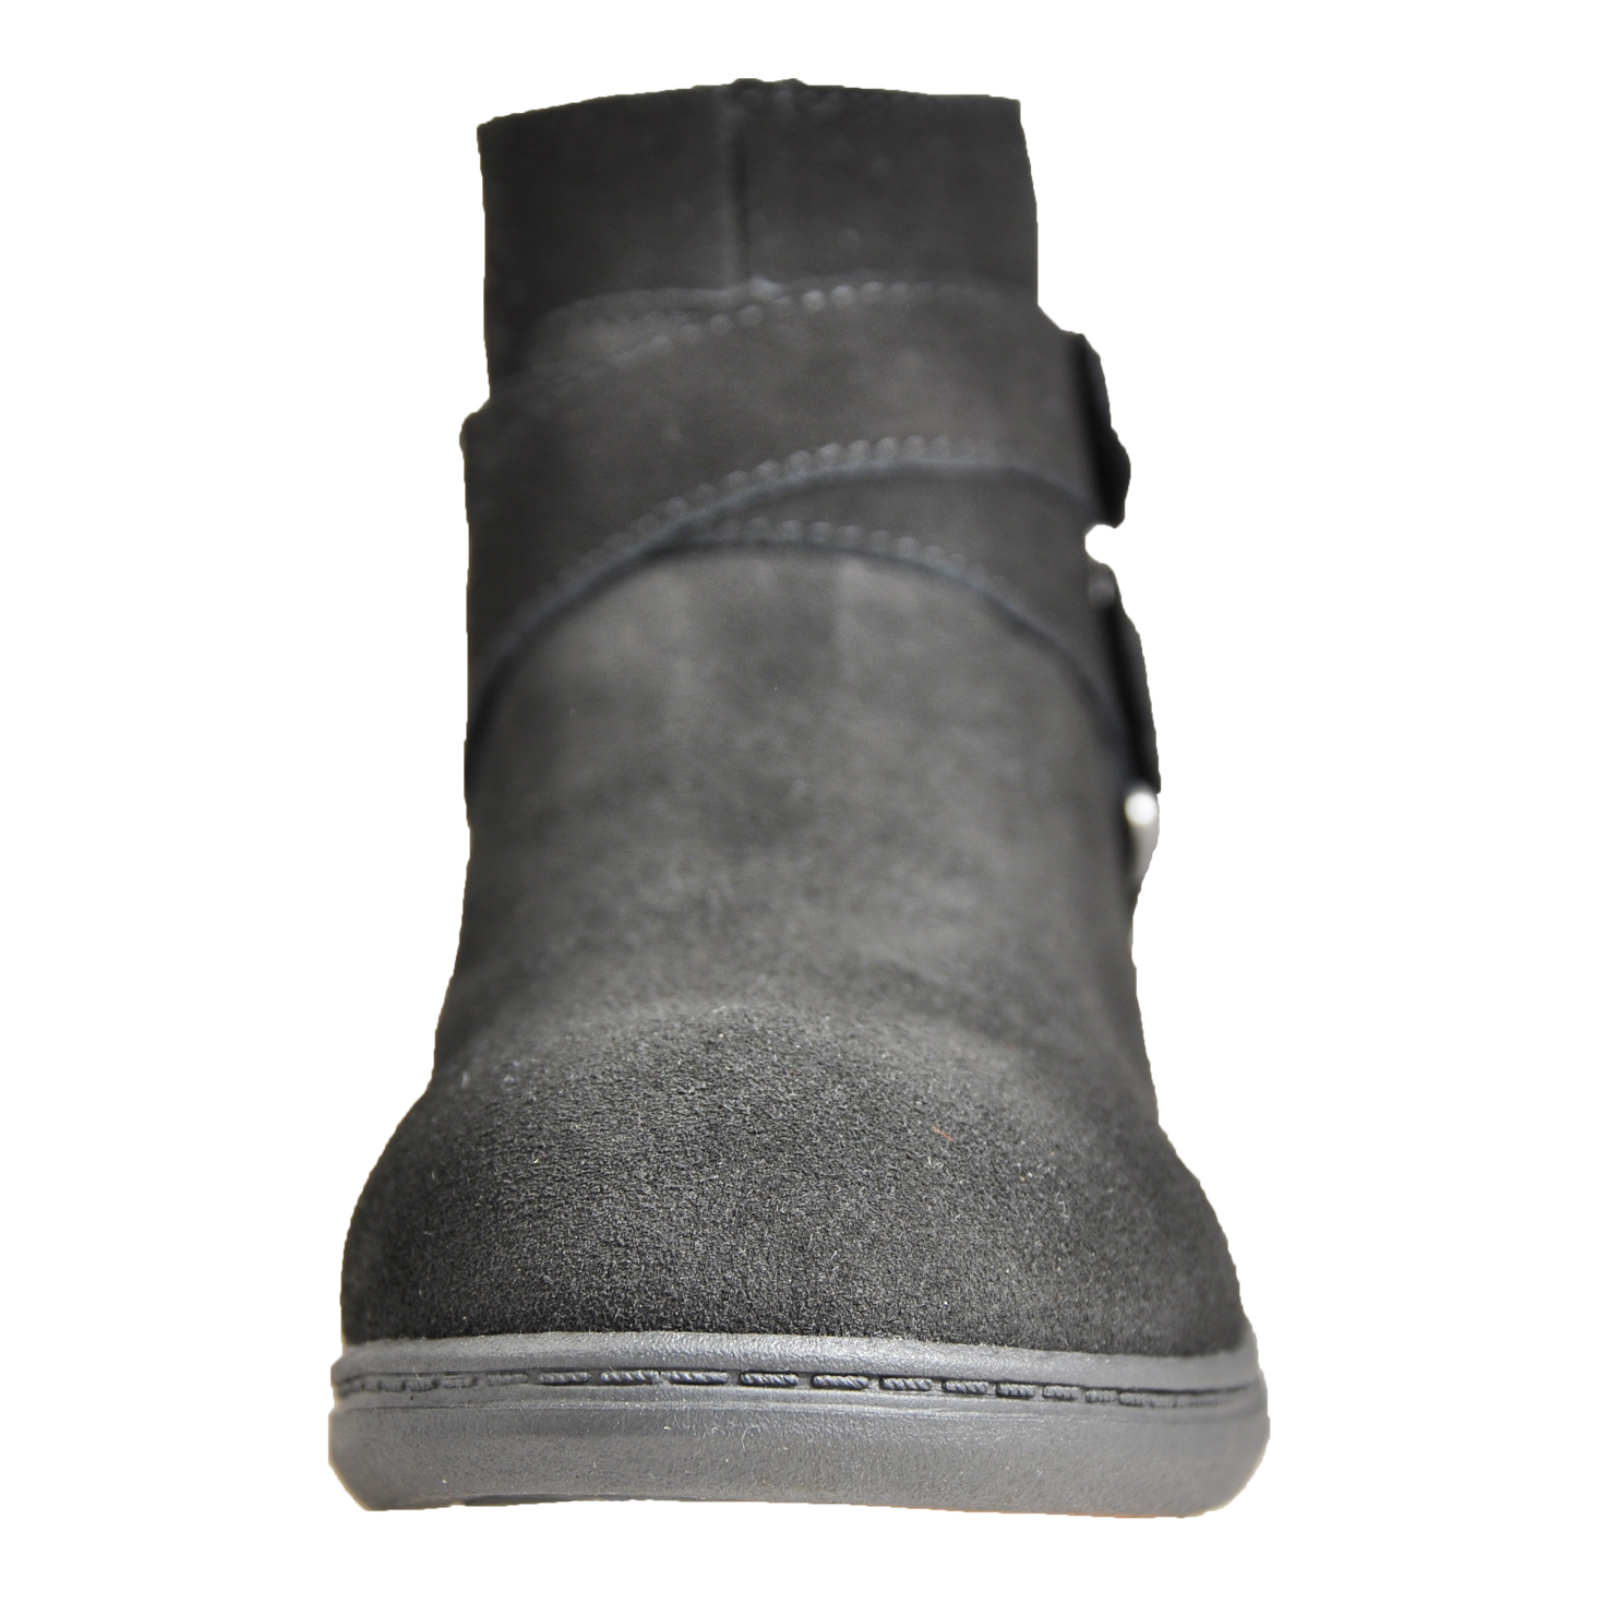 46f7e299c2dab Details about Rocket Dog Manilla Women s Classic Formal Ankle Buckle  Fashion Boot Black